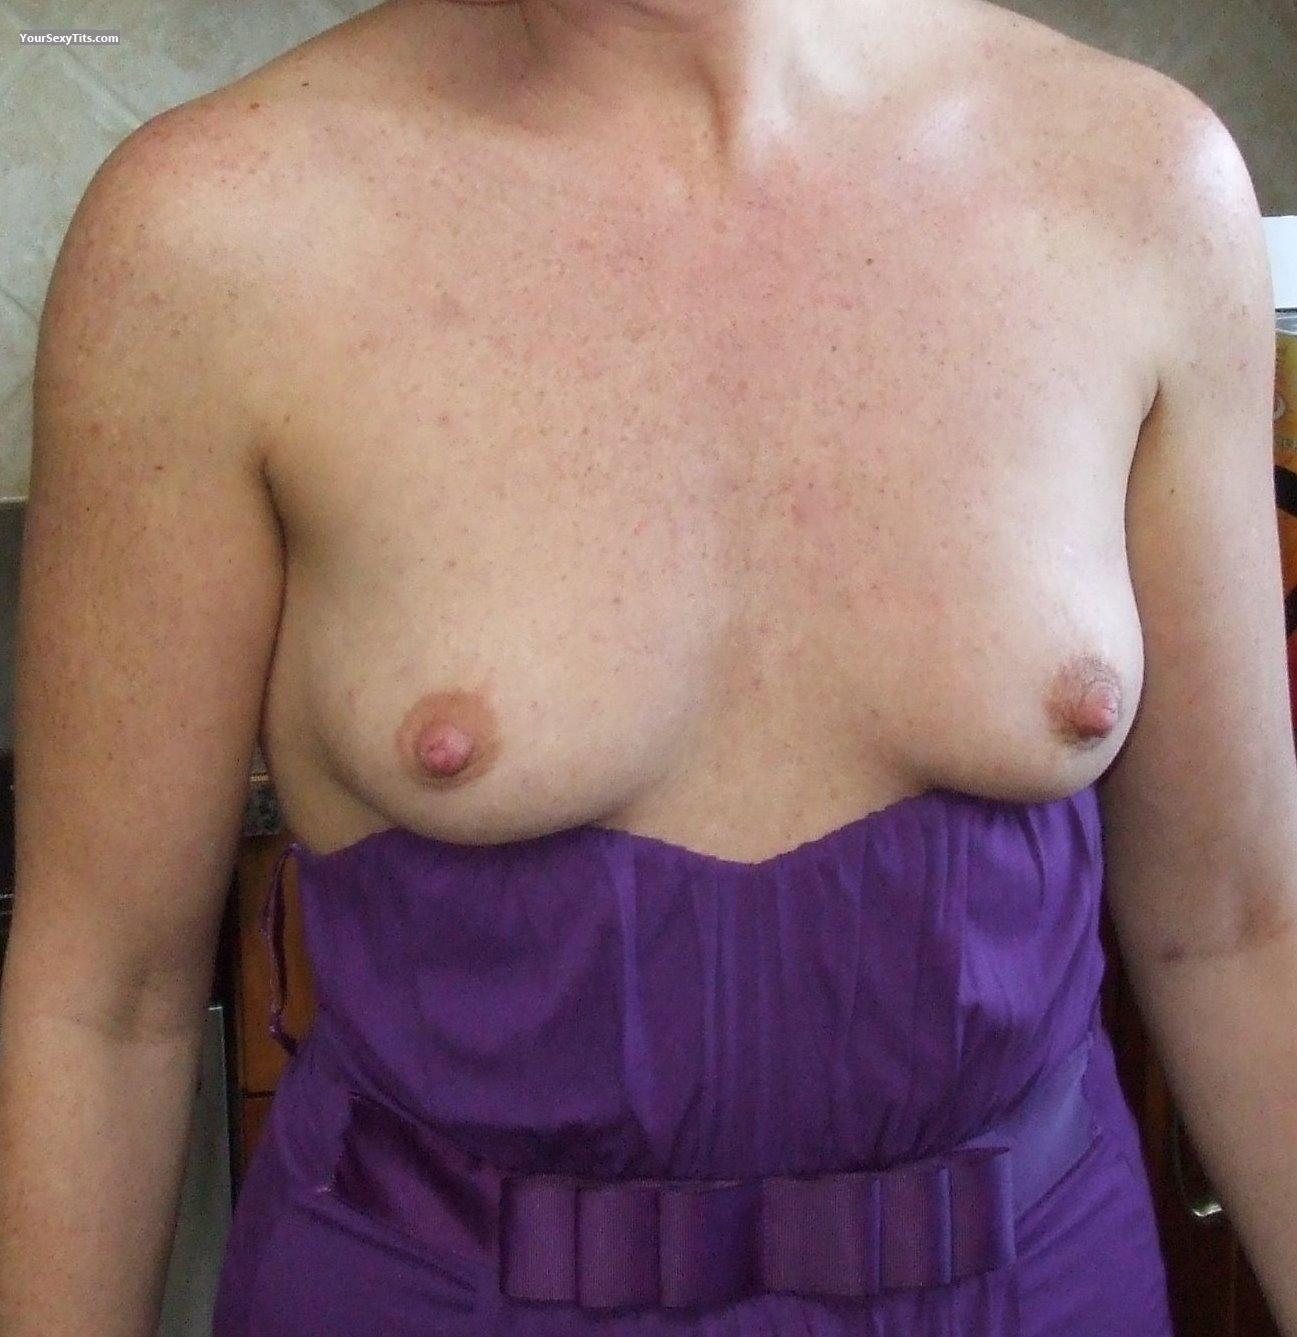 Tit Flash: Very Small Tits - Aka_x from United States